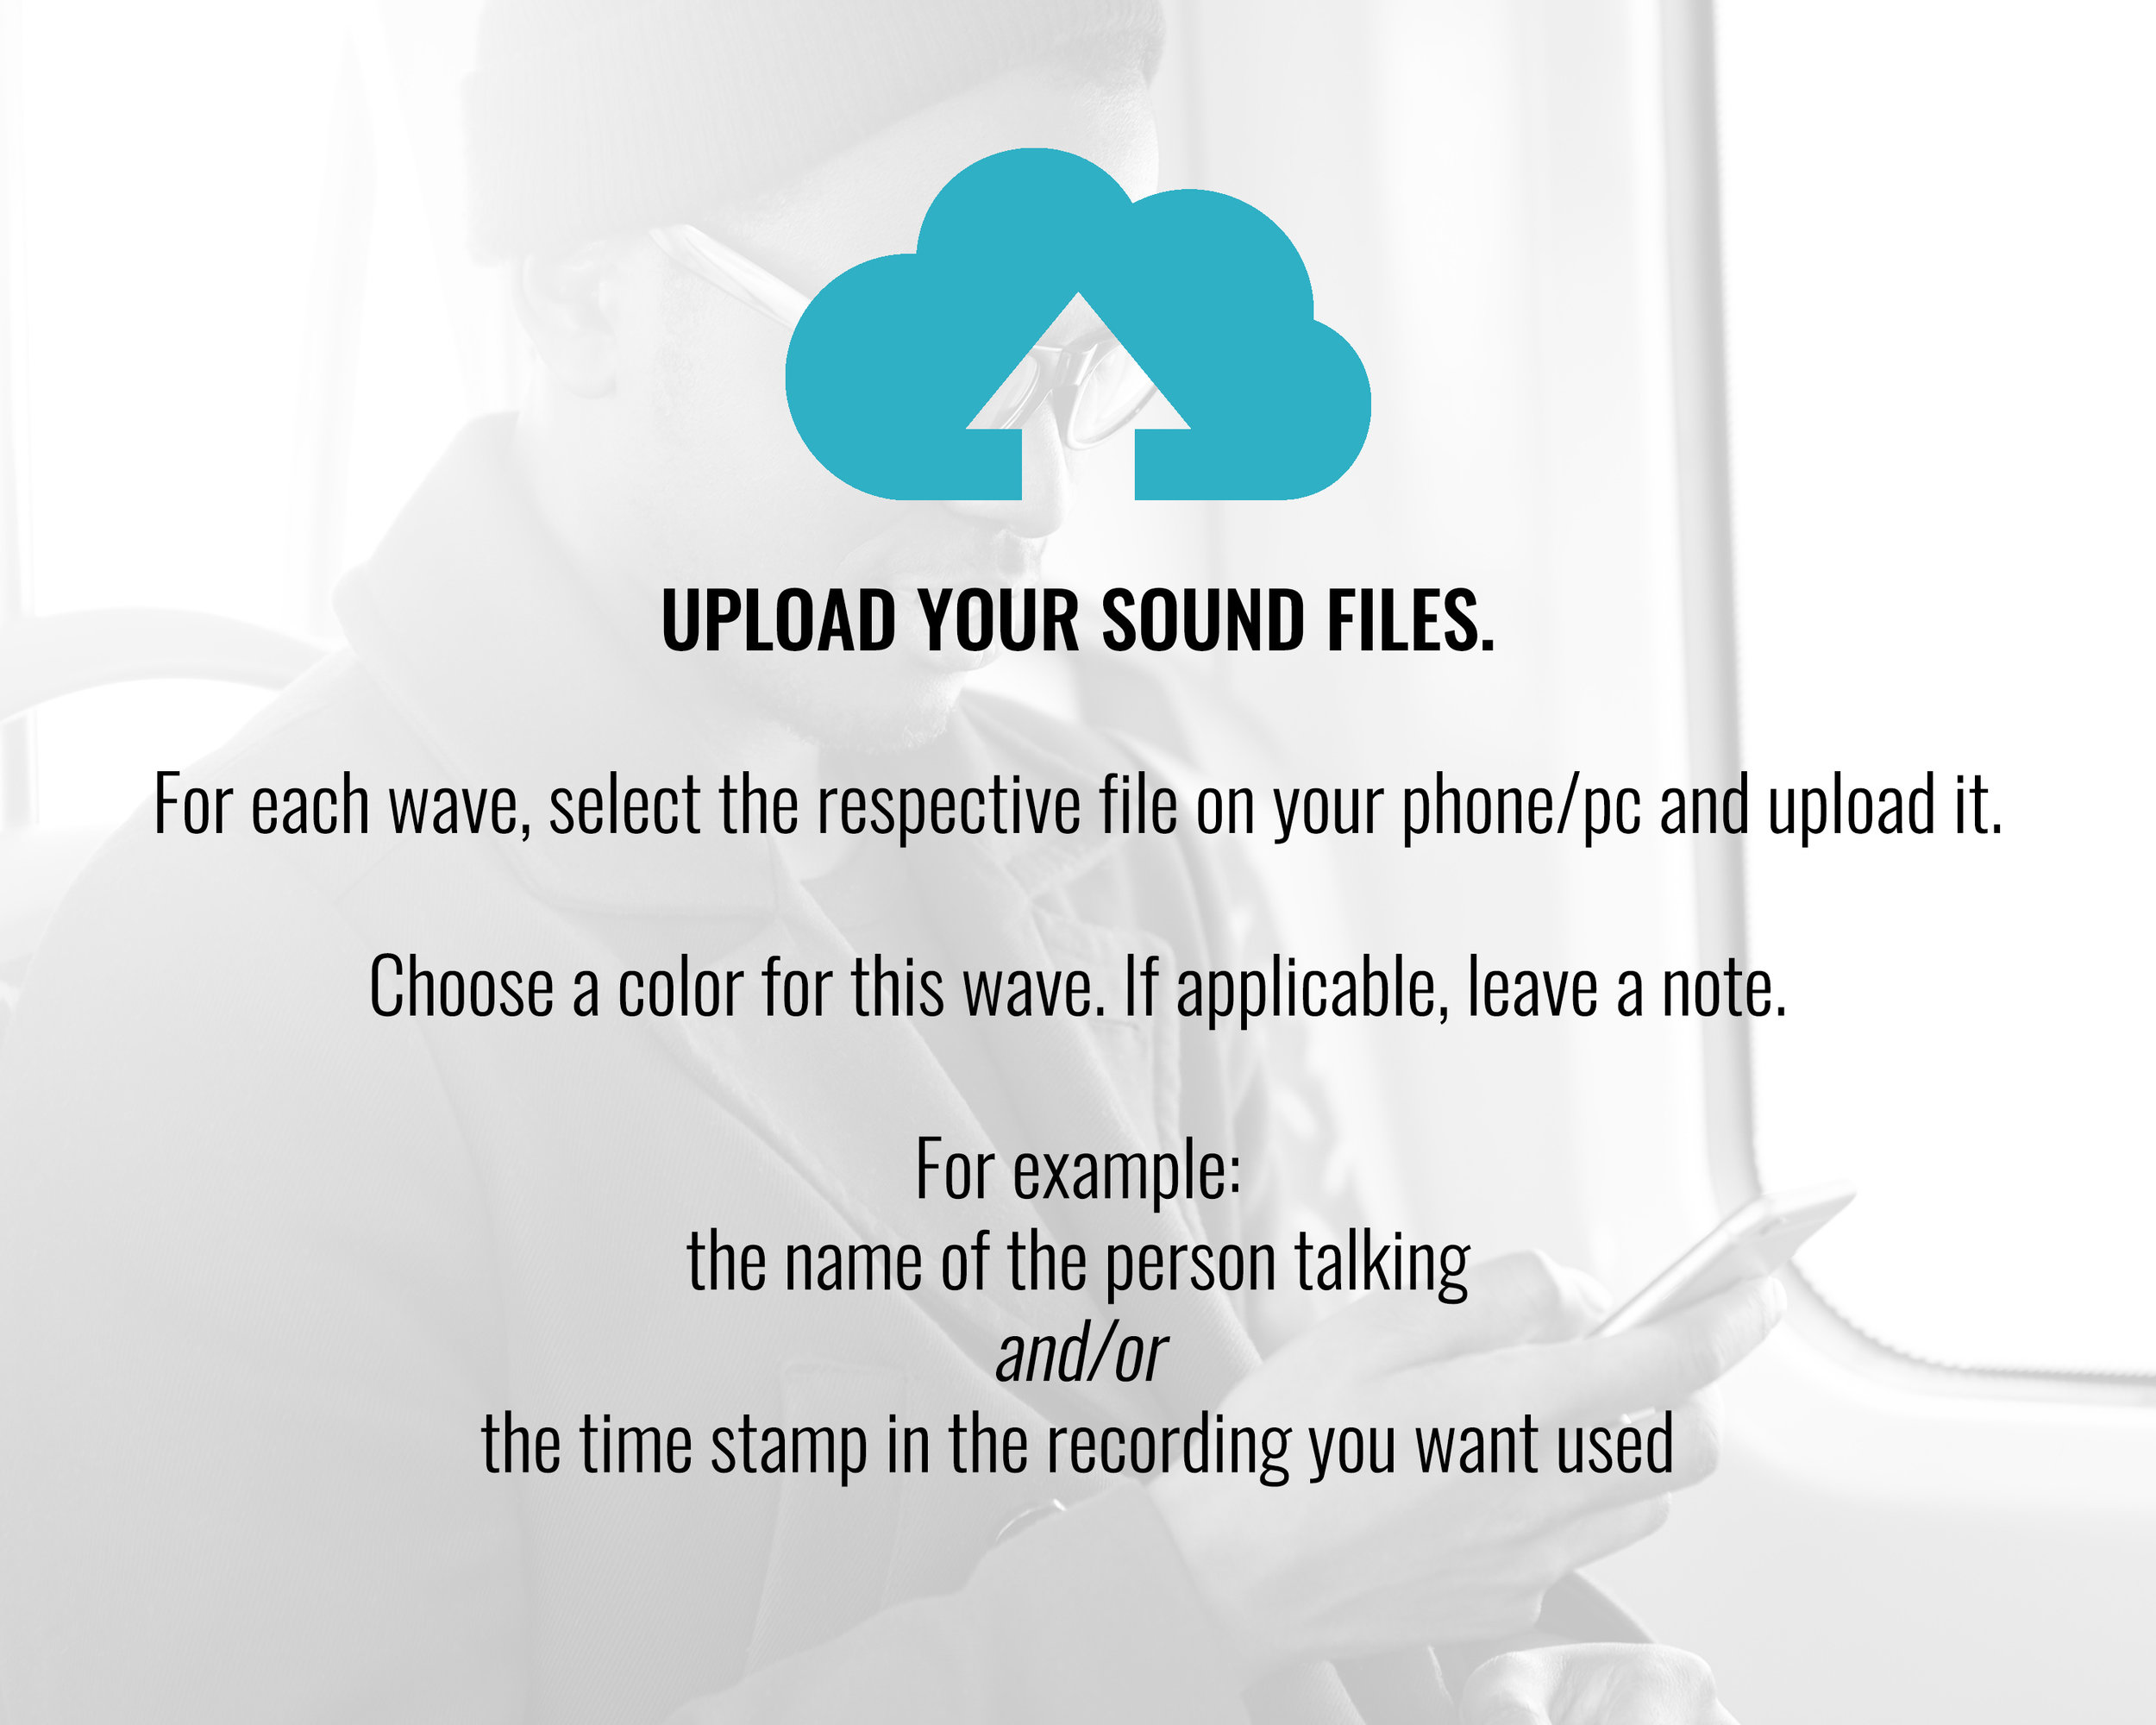 upload your file.jpg